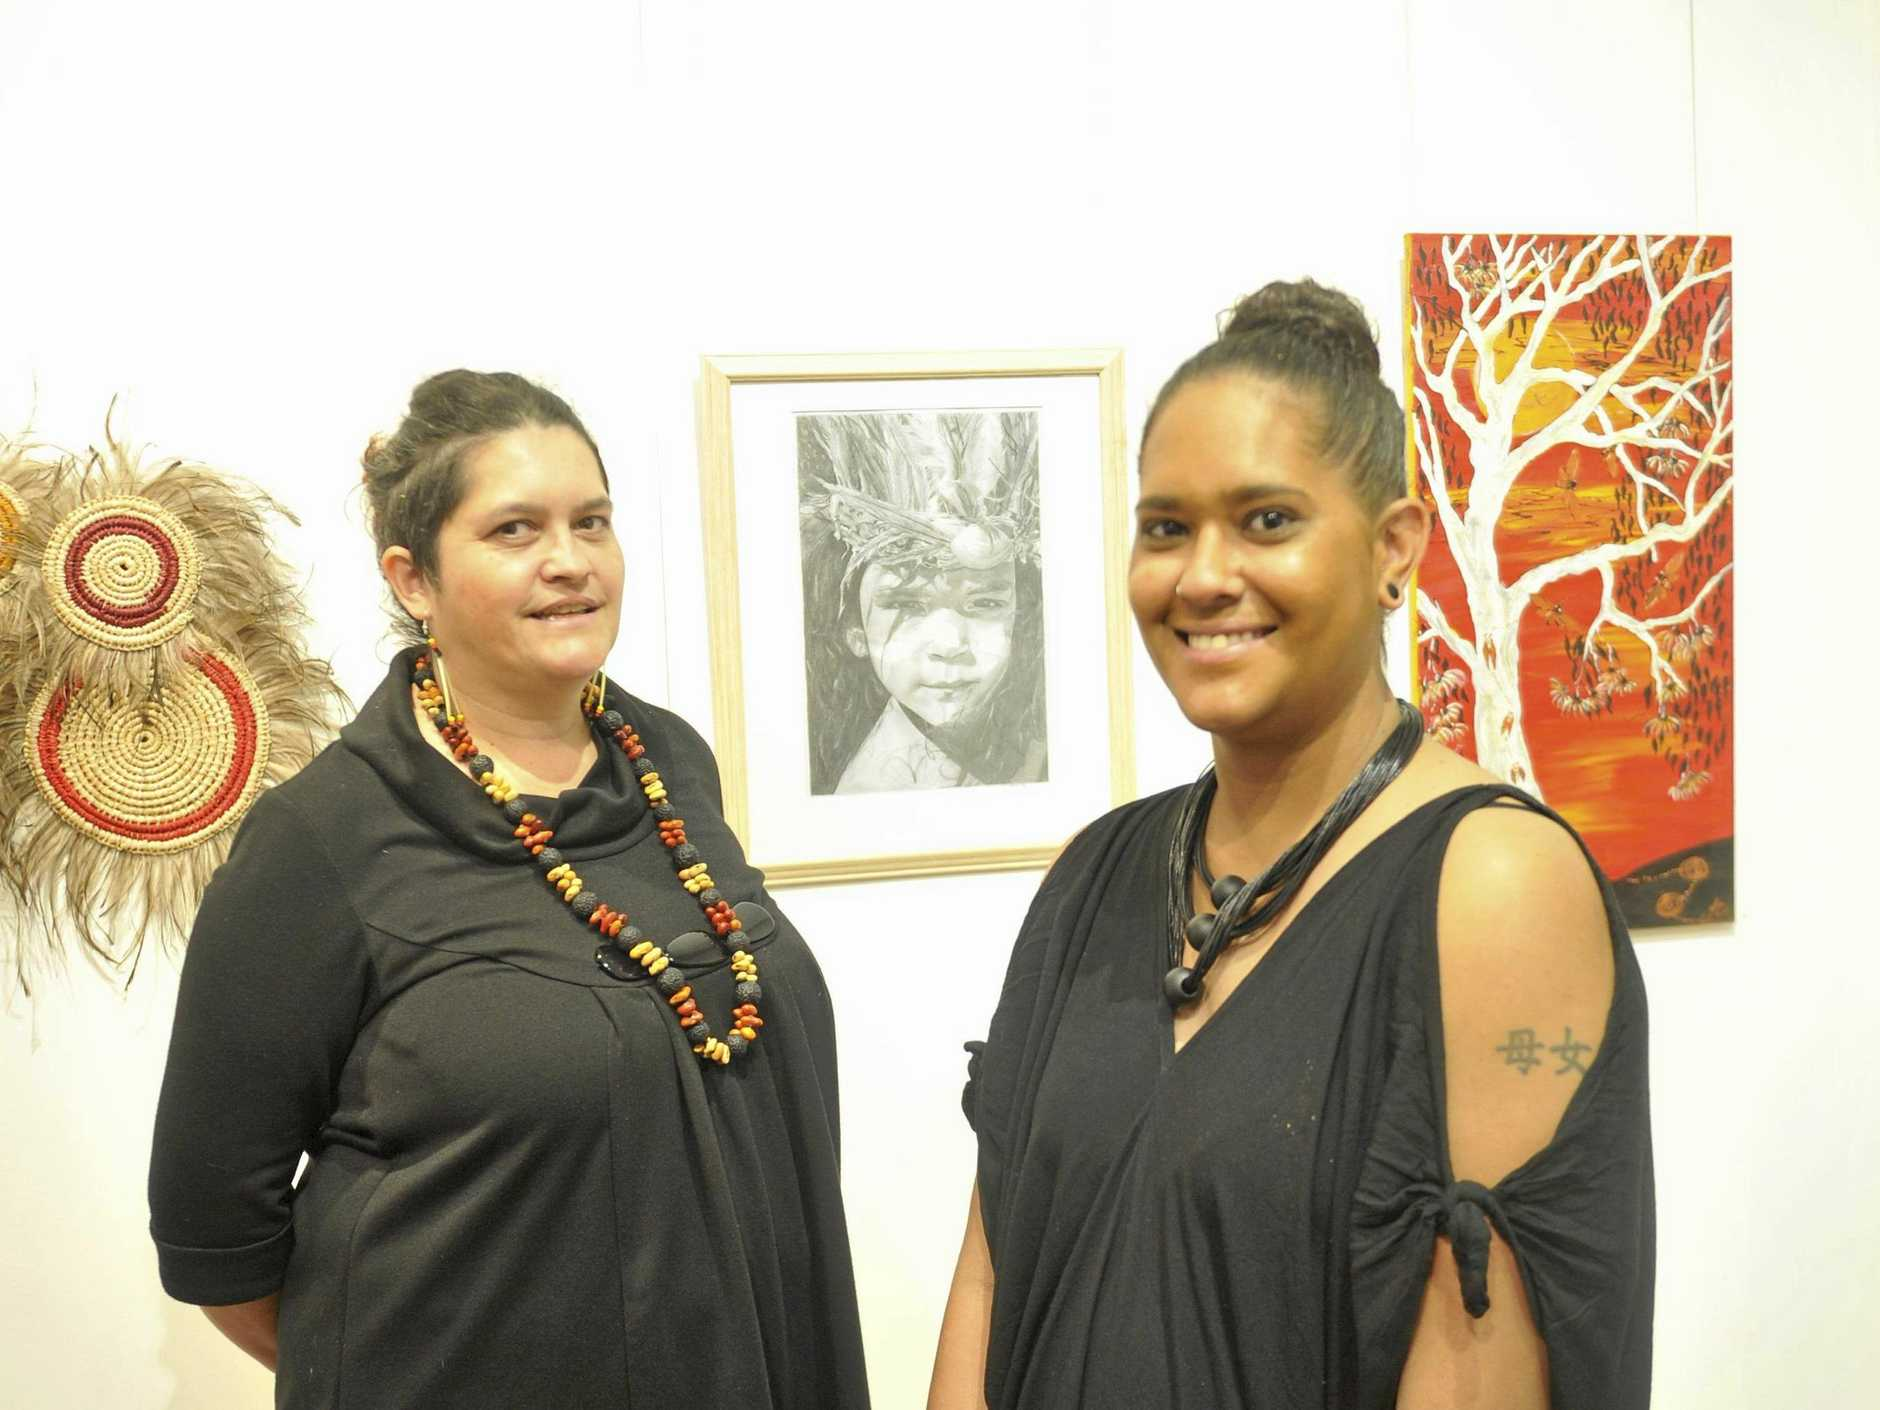 EXQUISITELY EXECUTED: Exhibition judge Bianca Beetson and art prize winner Stacie Fraser with her work  Daughter of a Warrior  in the background.